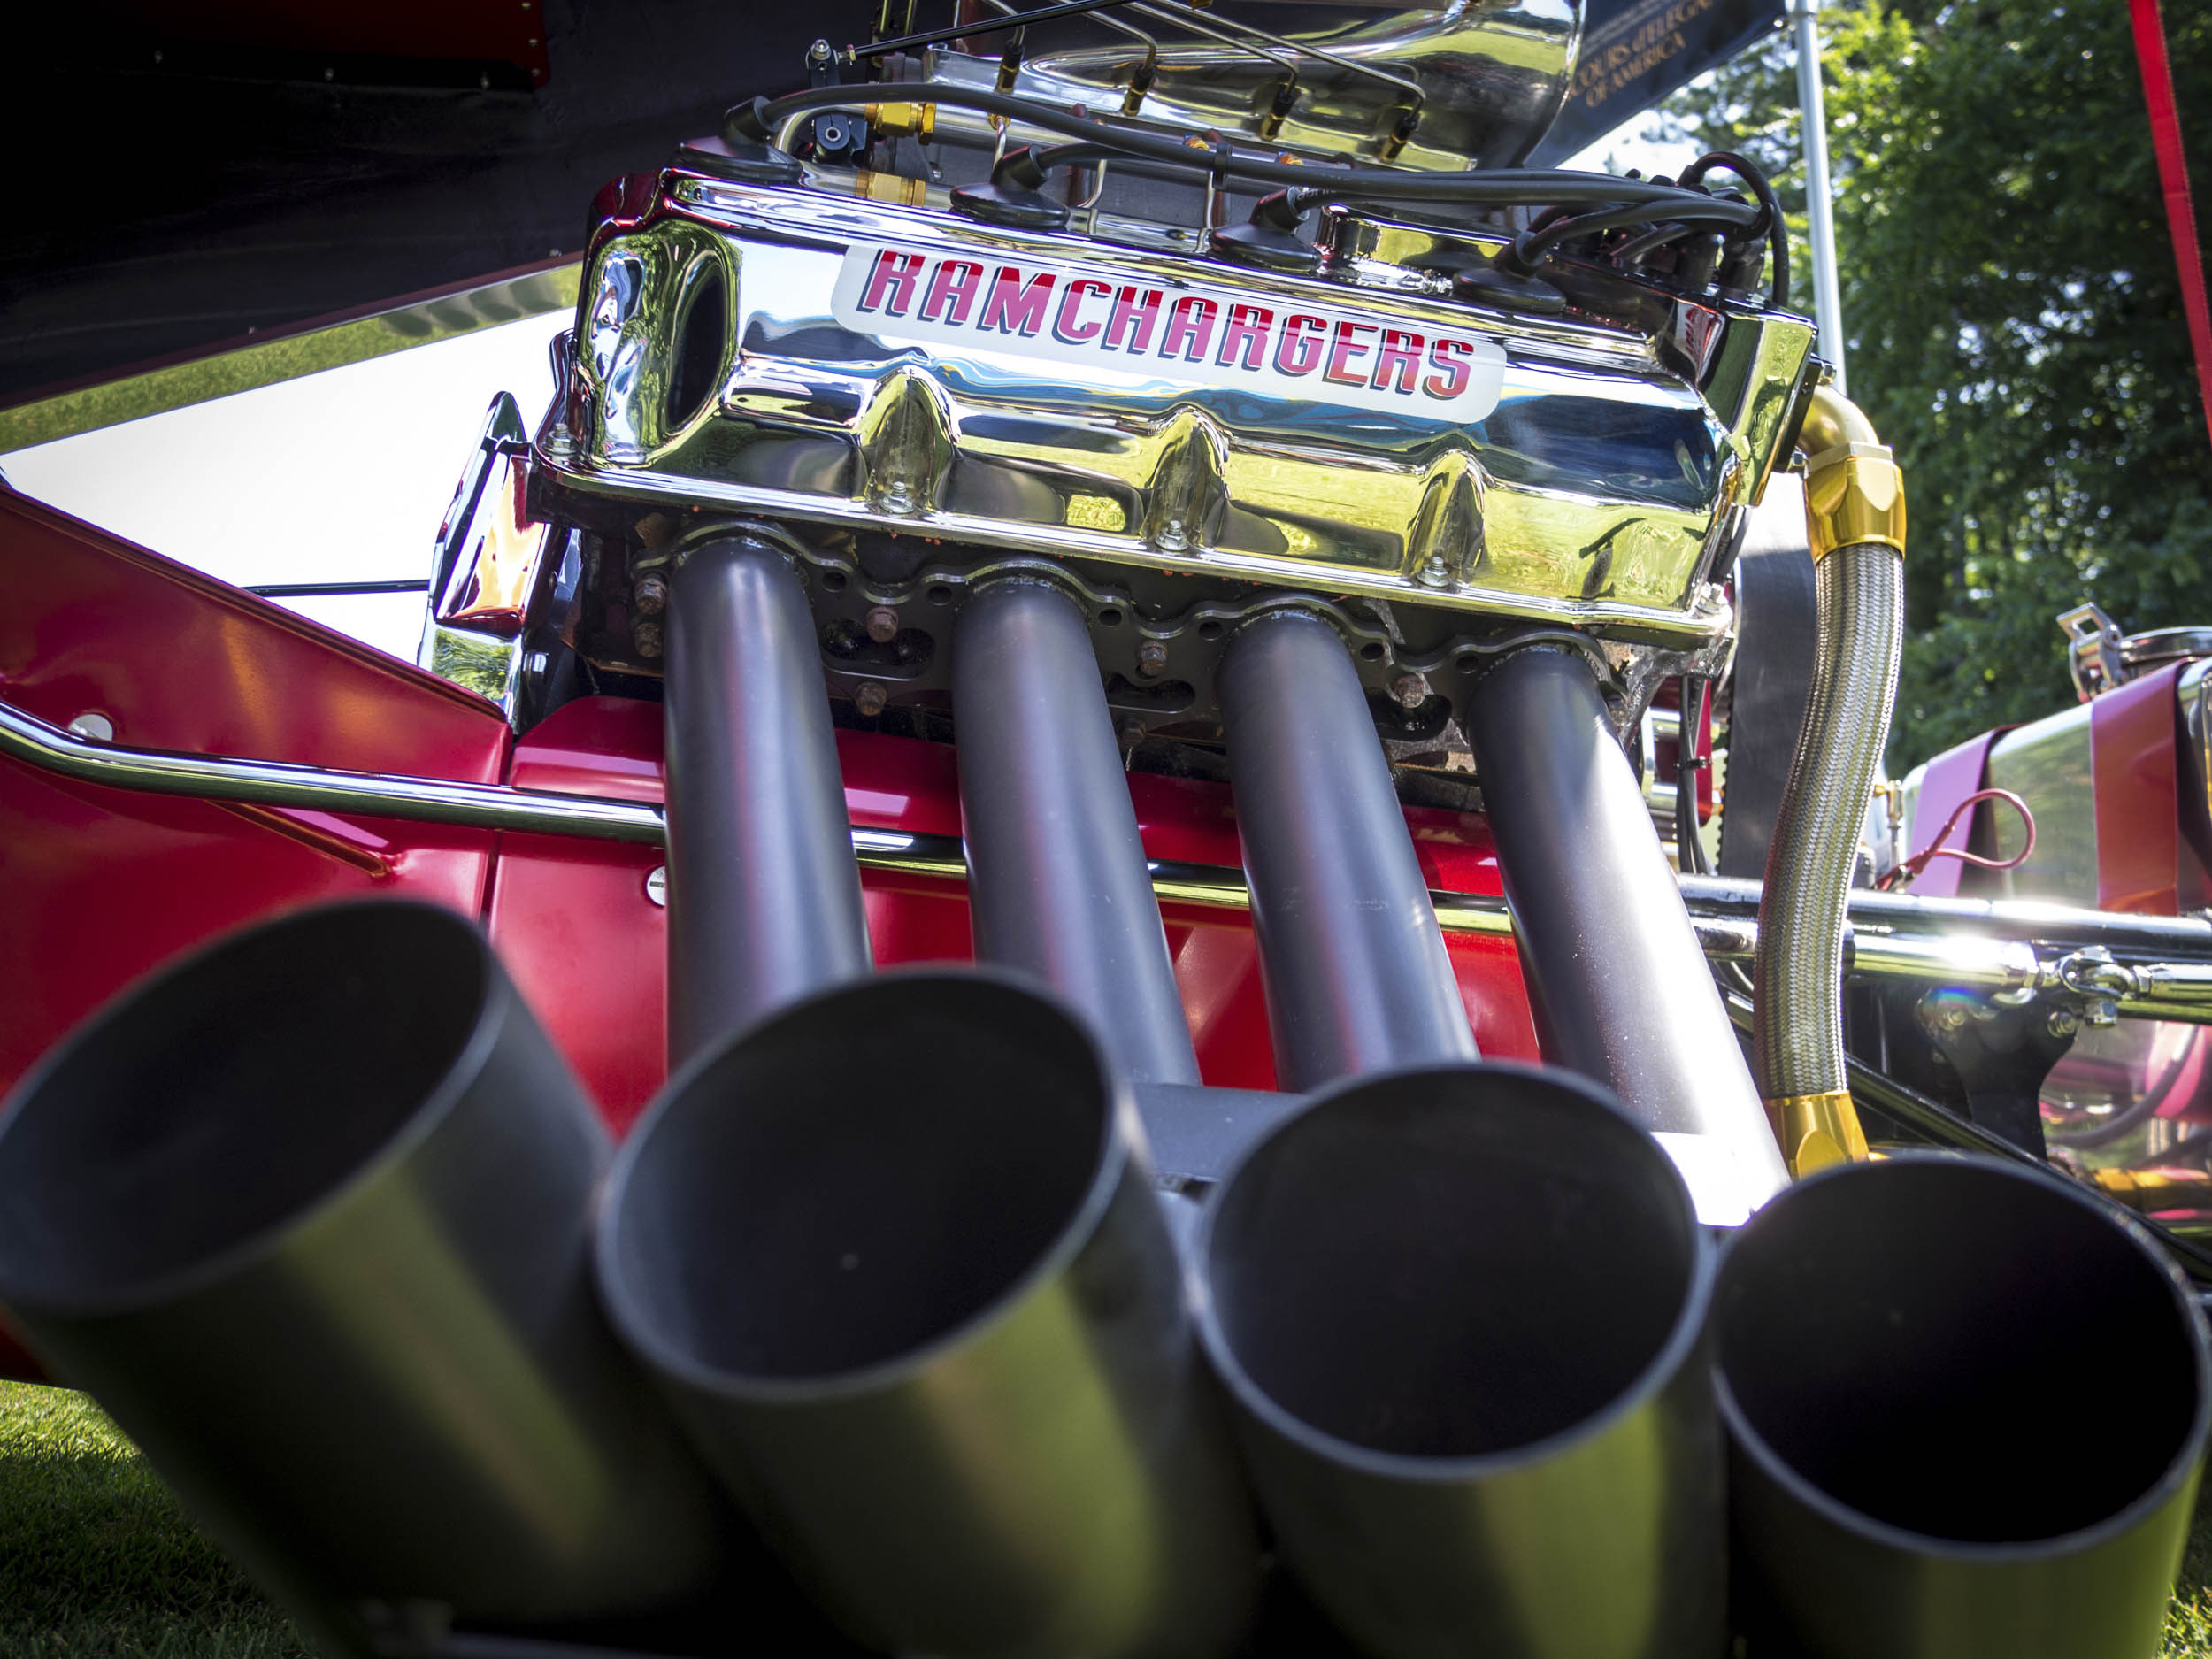 exhaust of a funny car